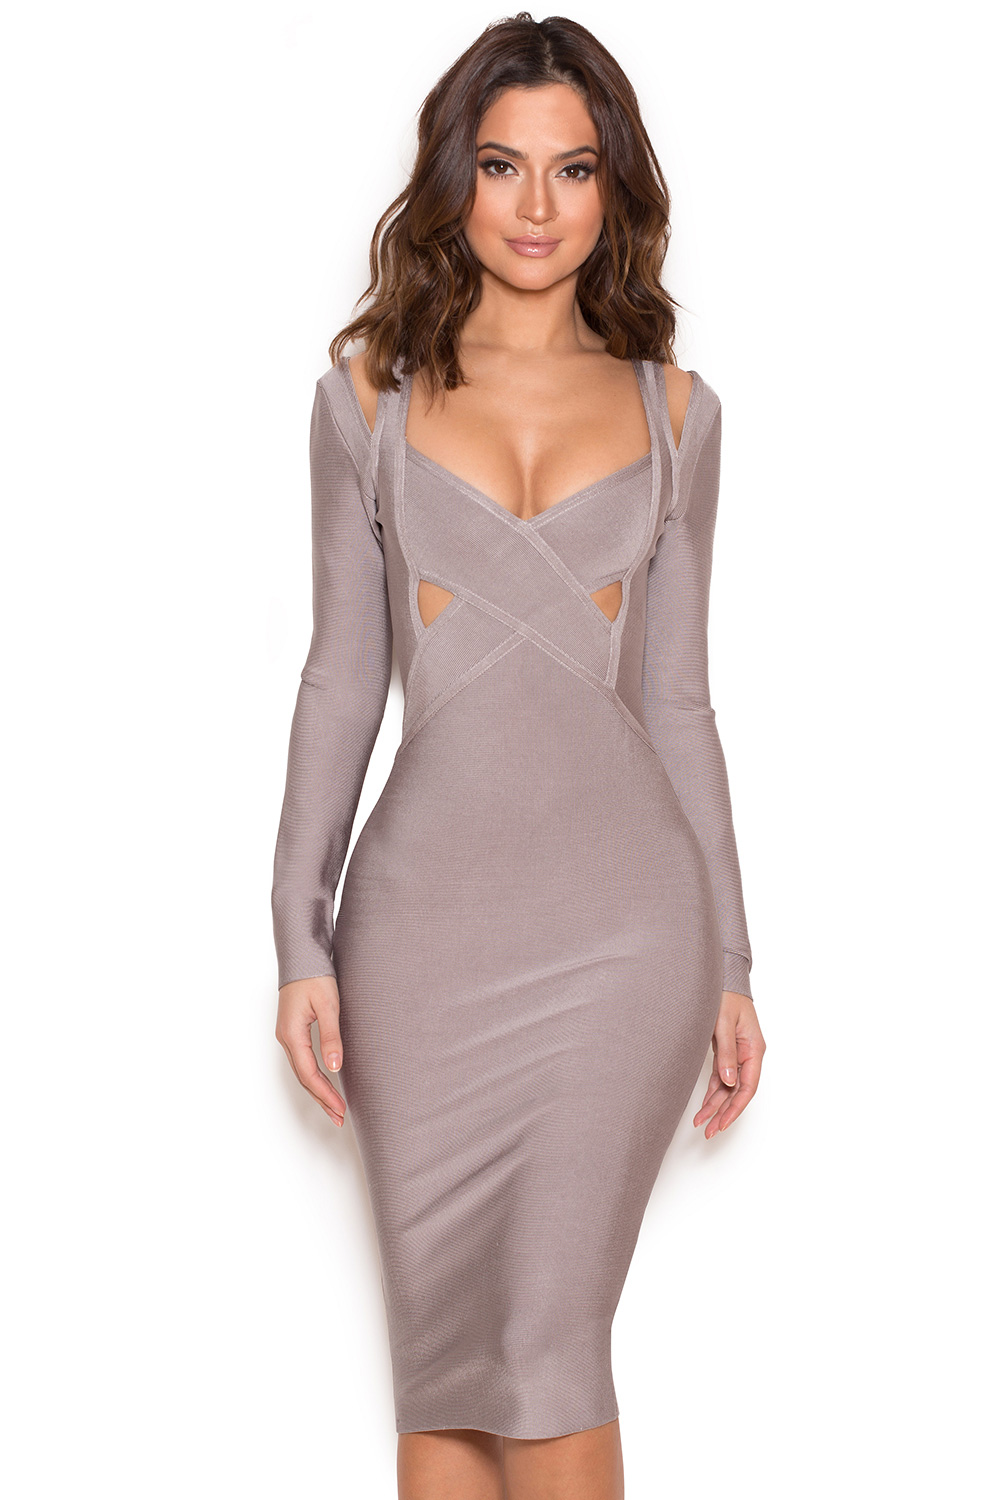 Clothing : Bandage Dresses : 'Calvi' Grey Long Sleeve Cut Out ...